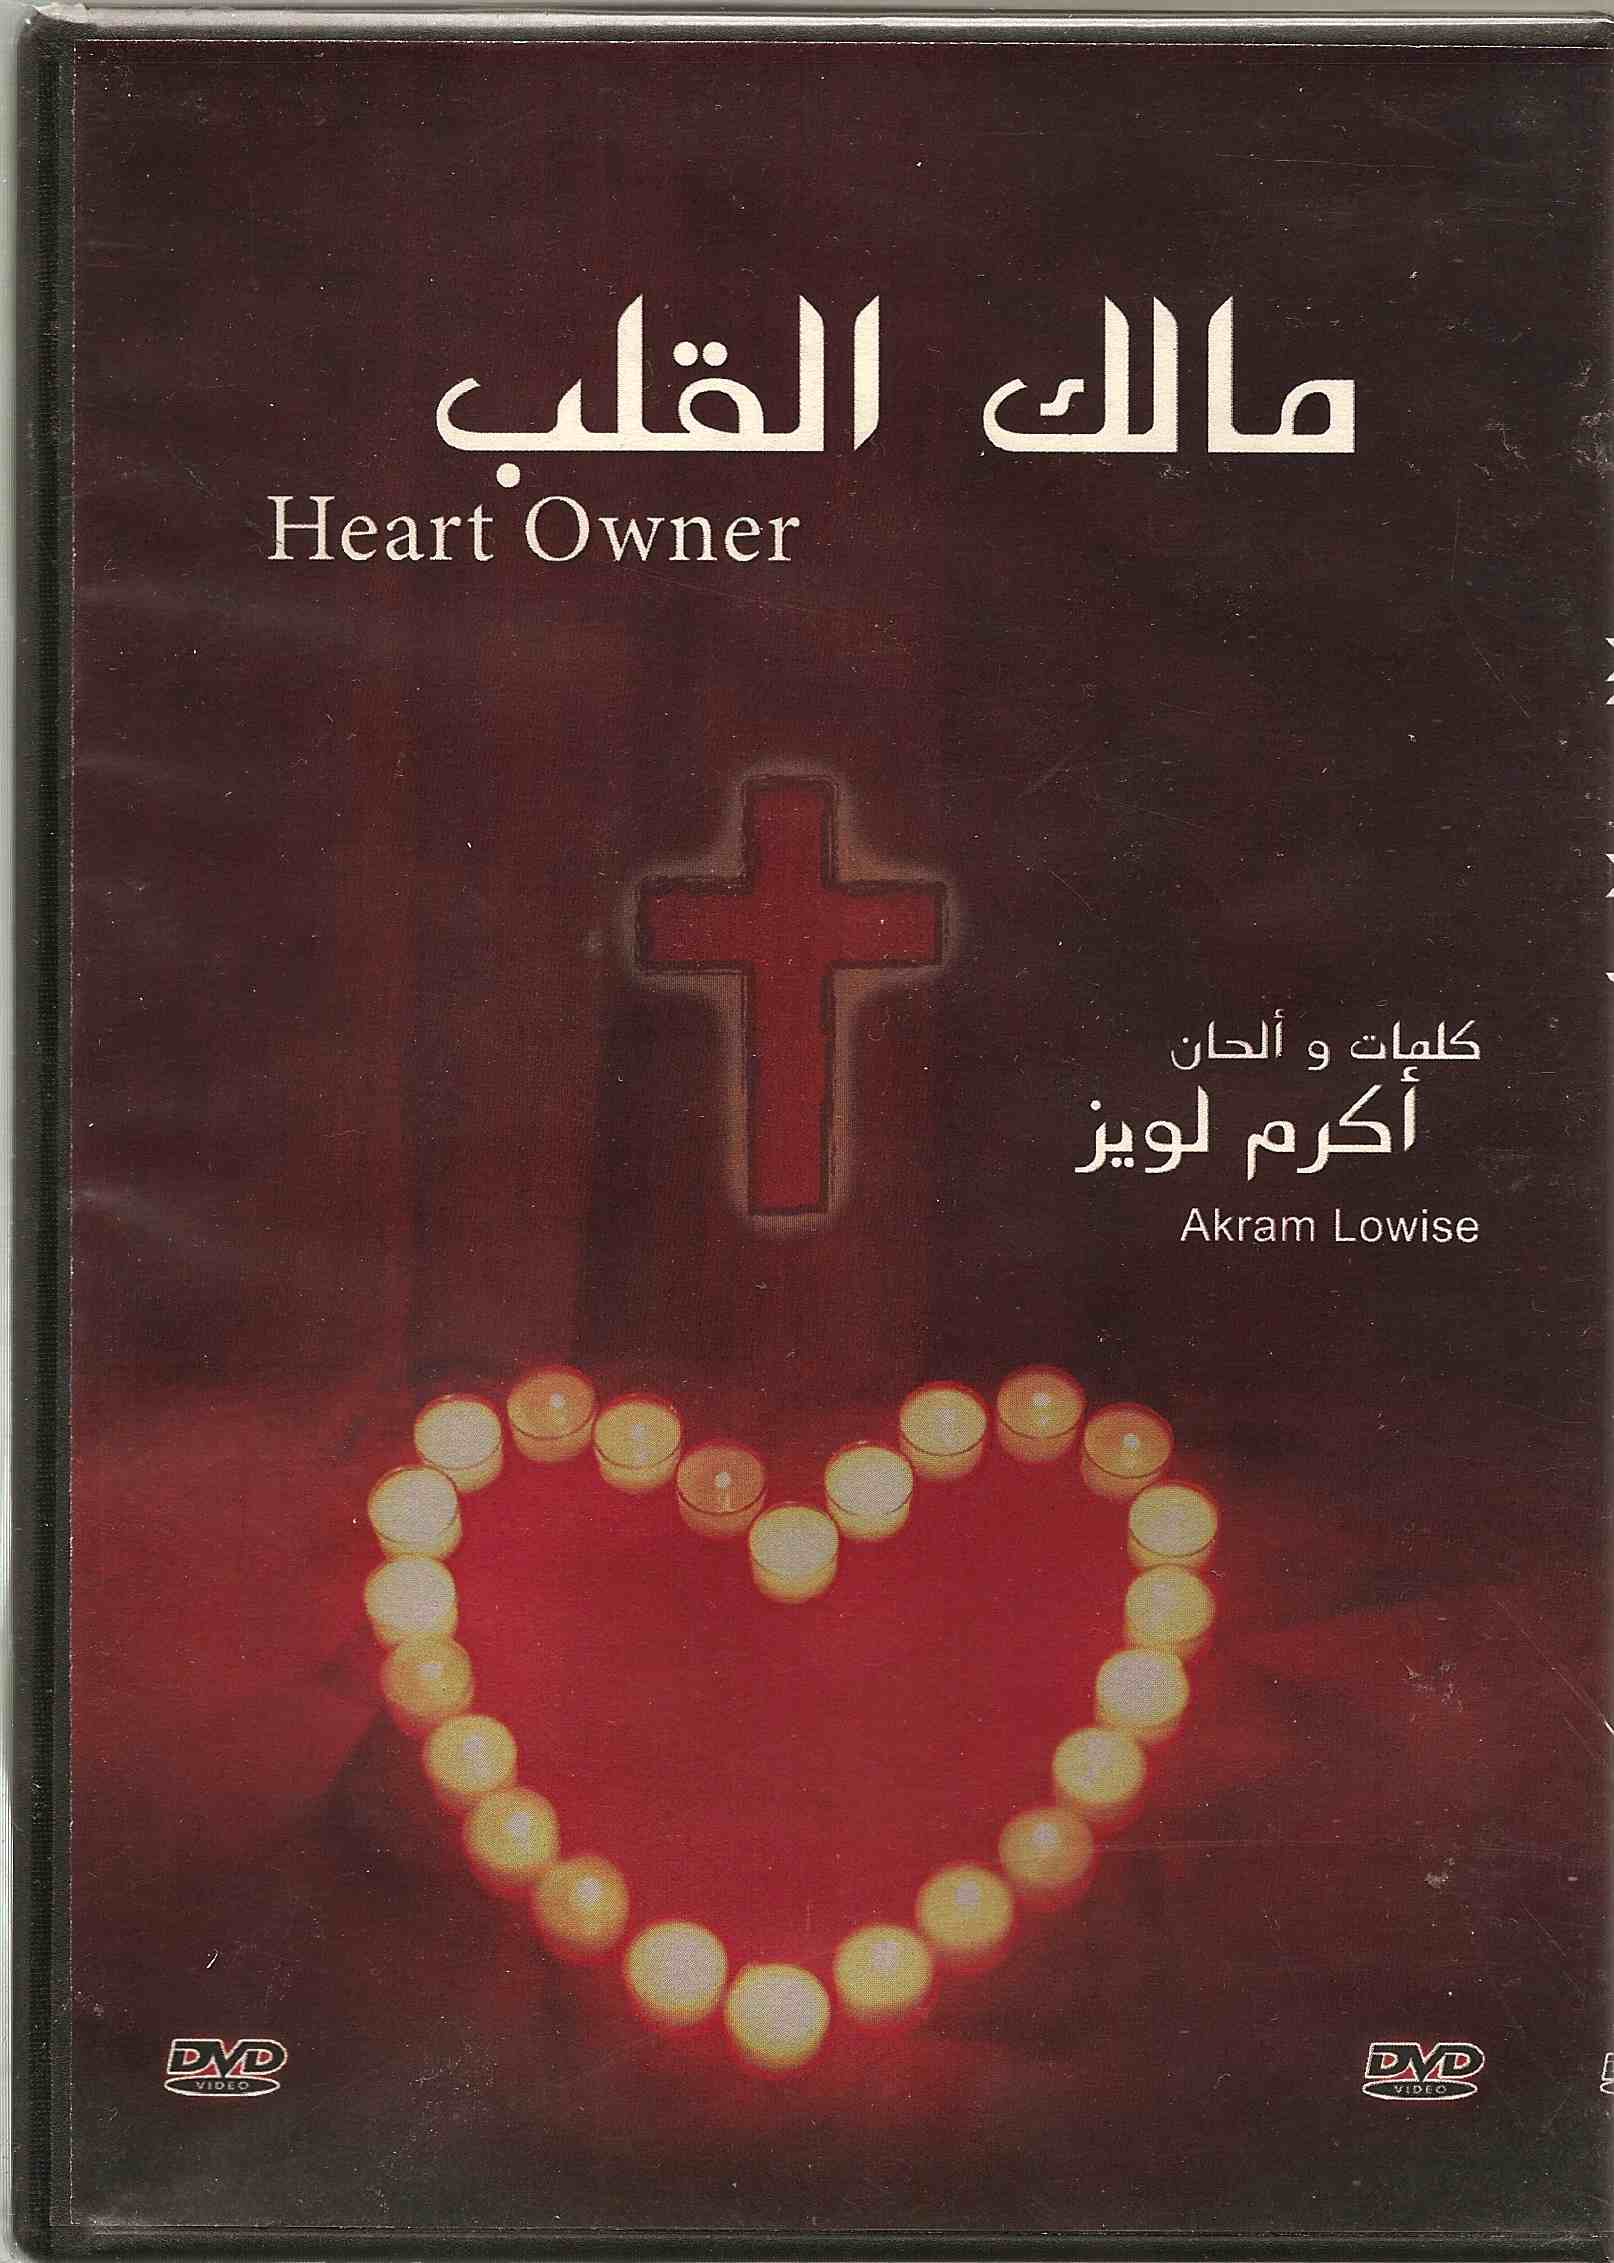 Heart Owner by Akram Lowise Song DVD